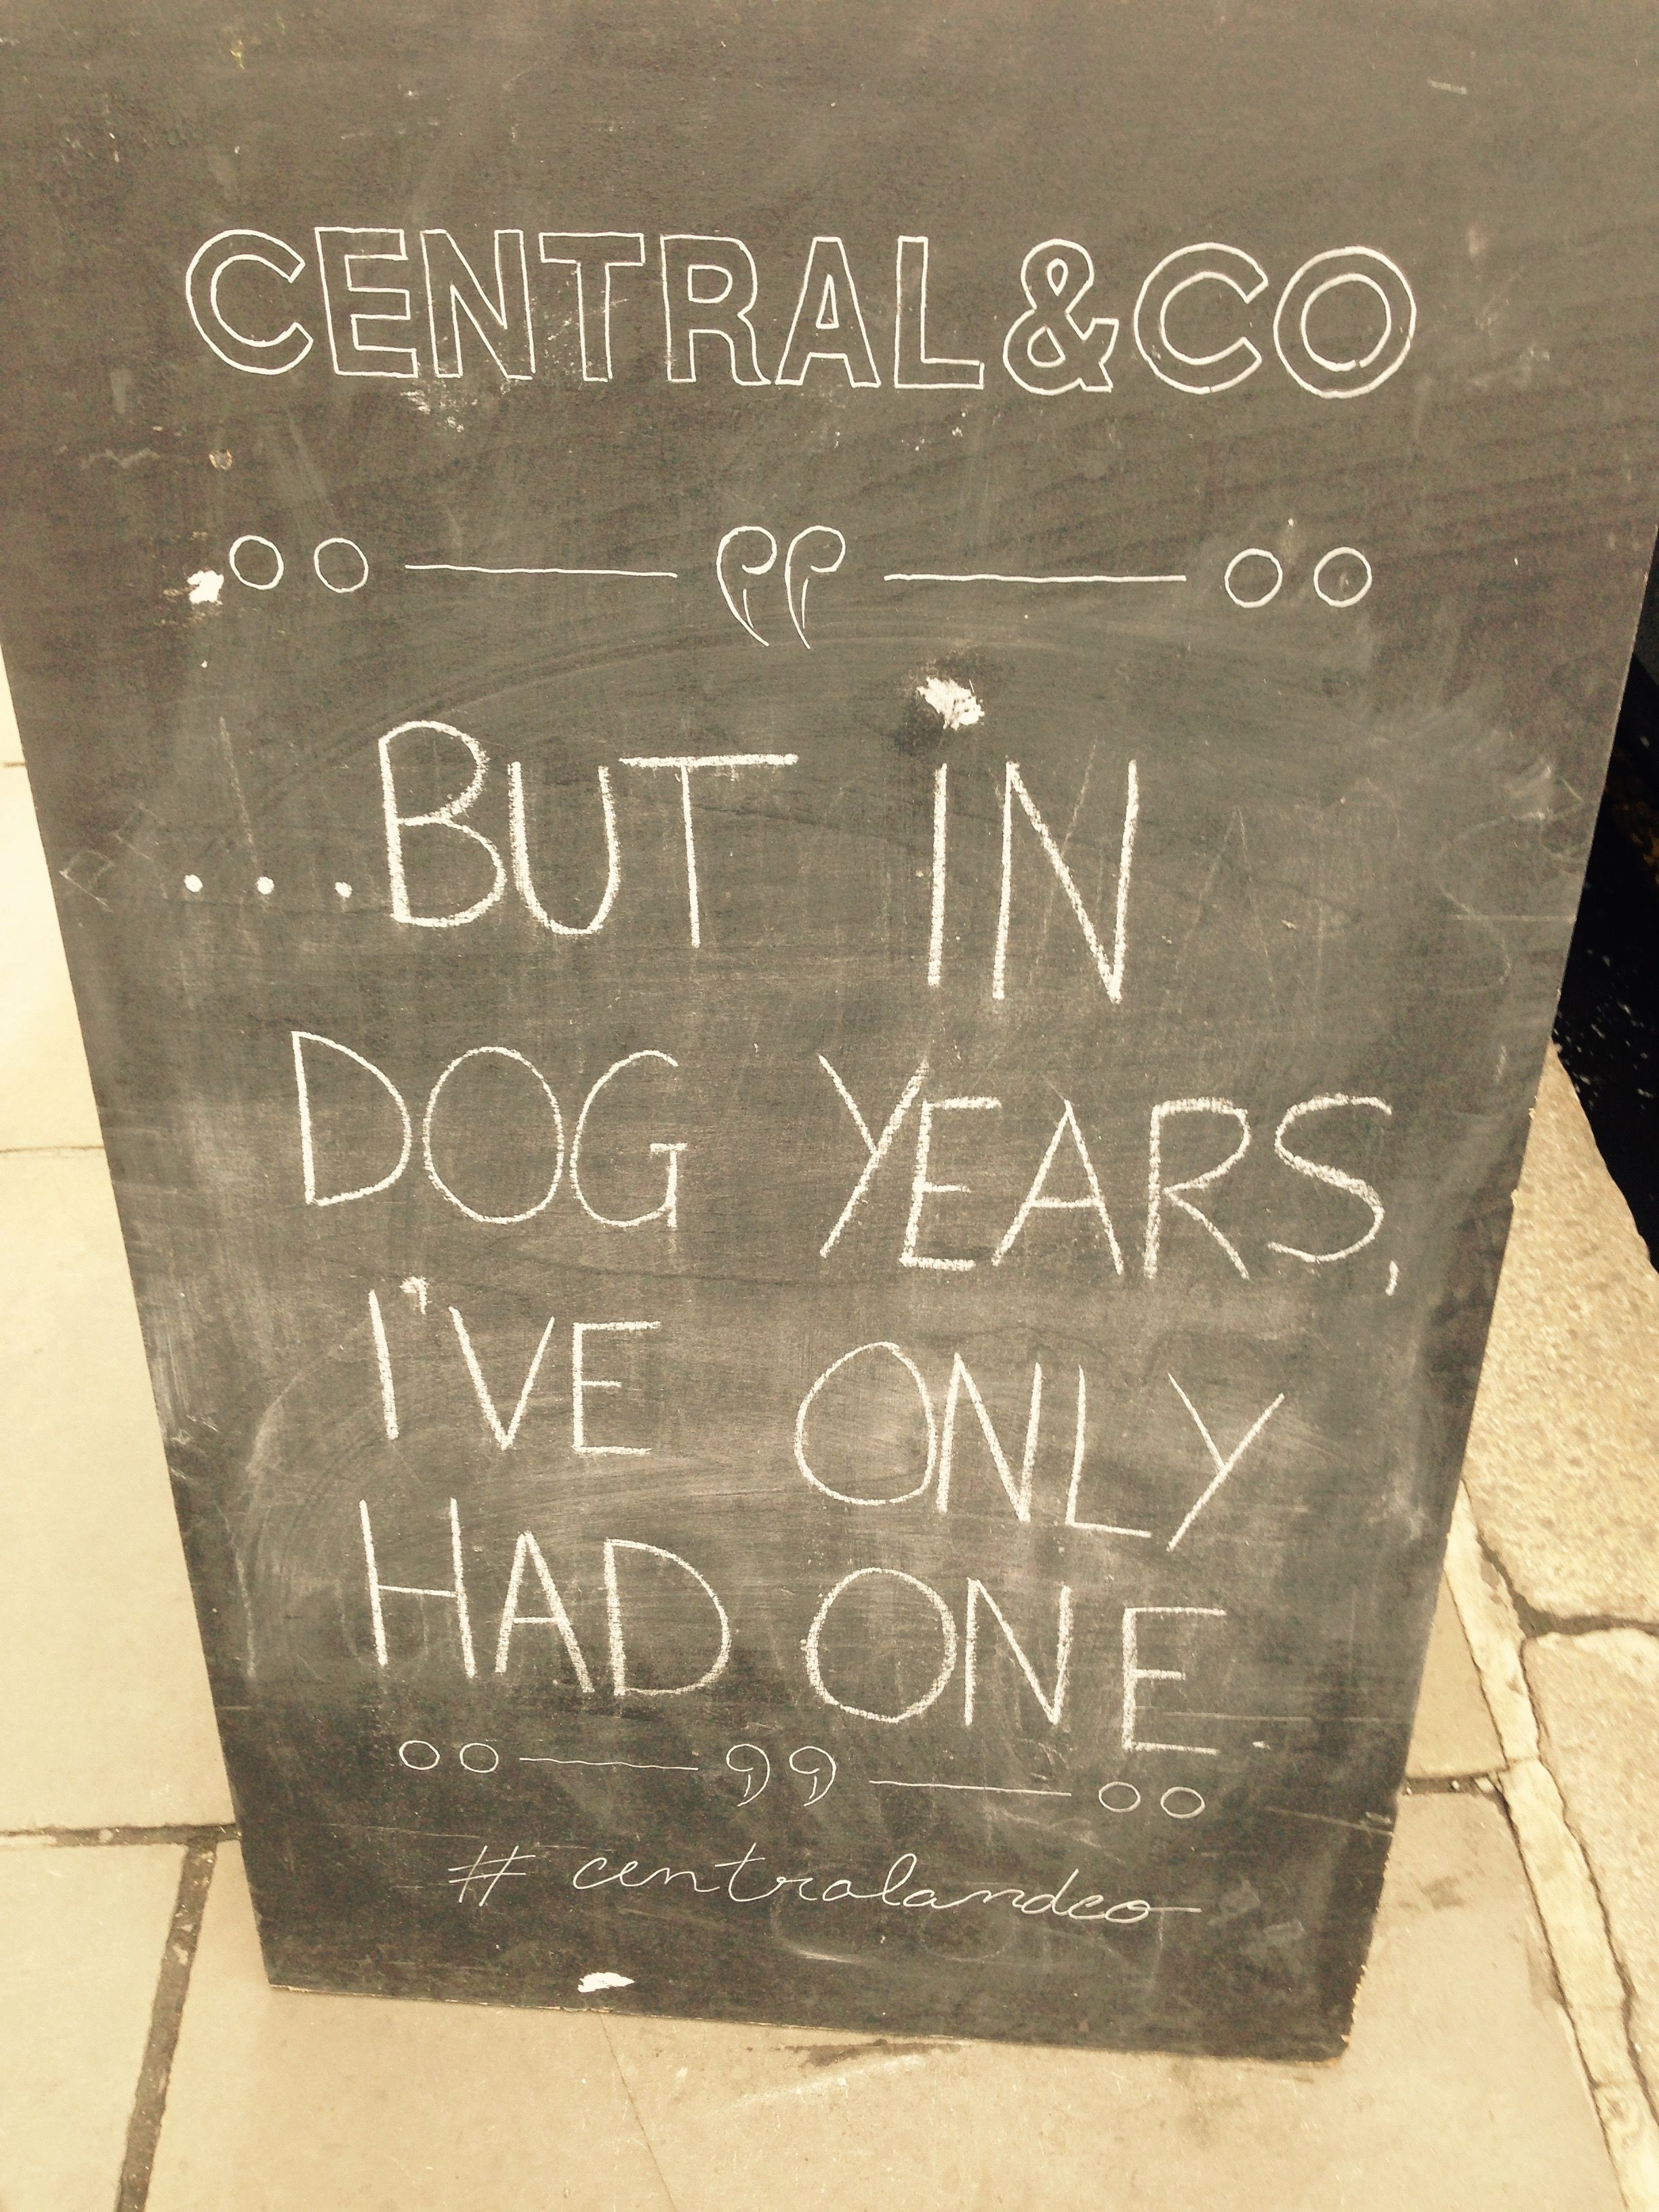 But in Dog Years I've Only Had One - Pub Signs